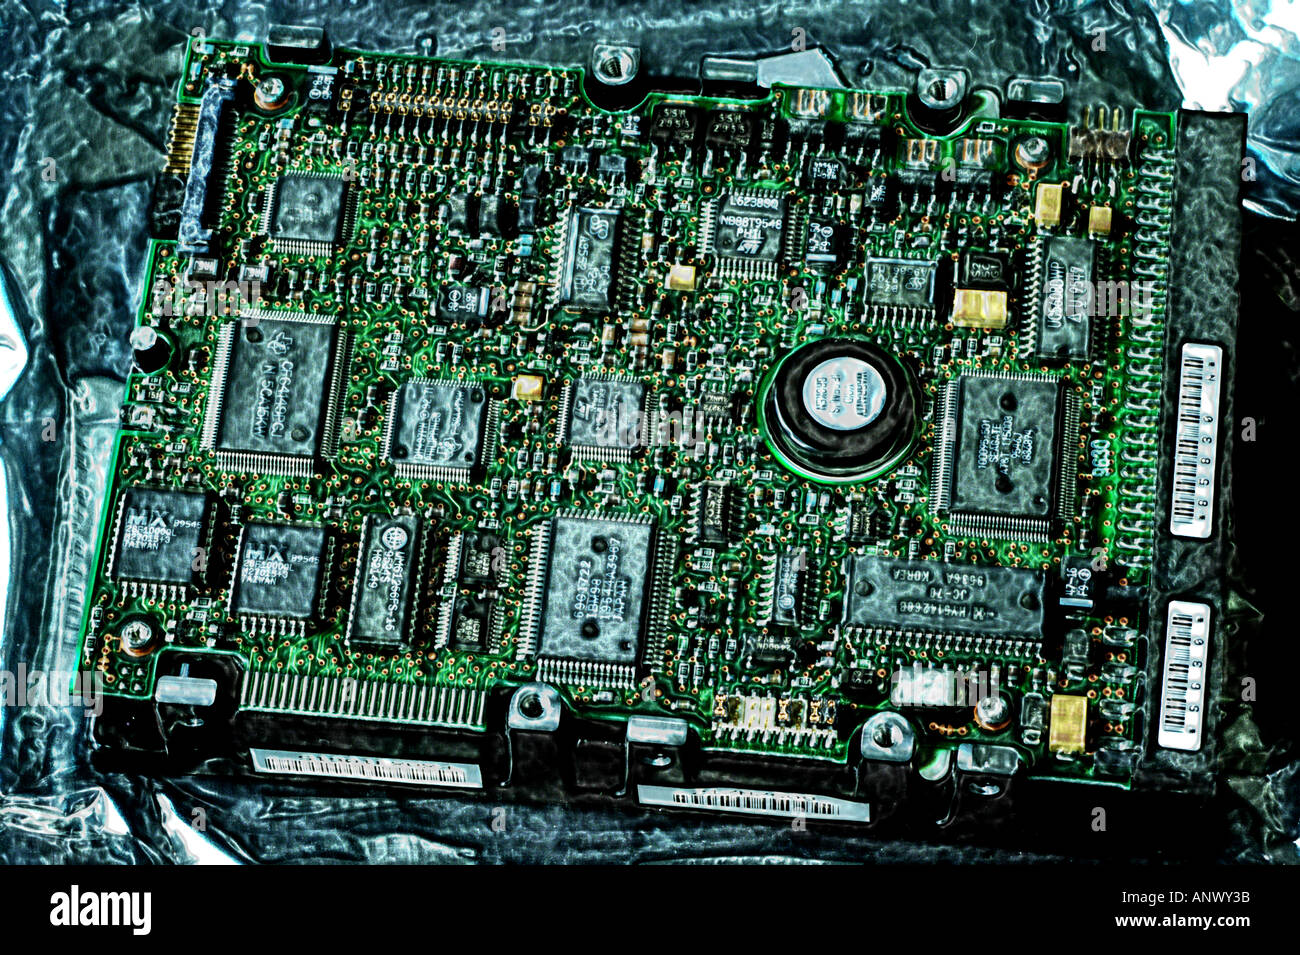 computer chip mother board showing electronic circuits diodes transistors - Stock Image